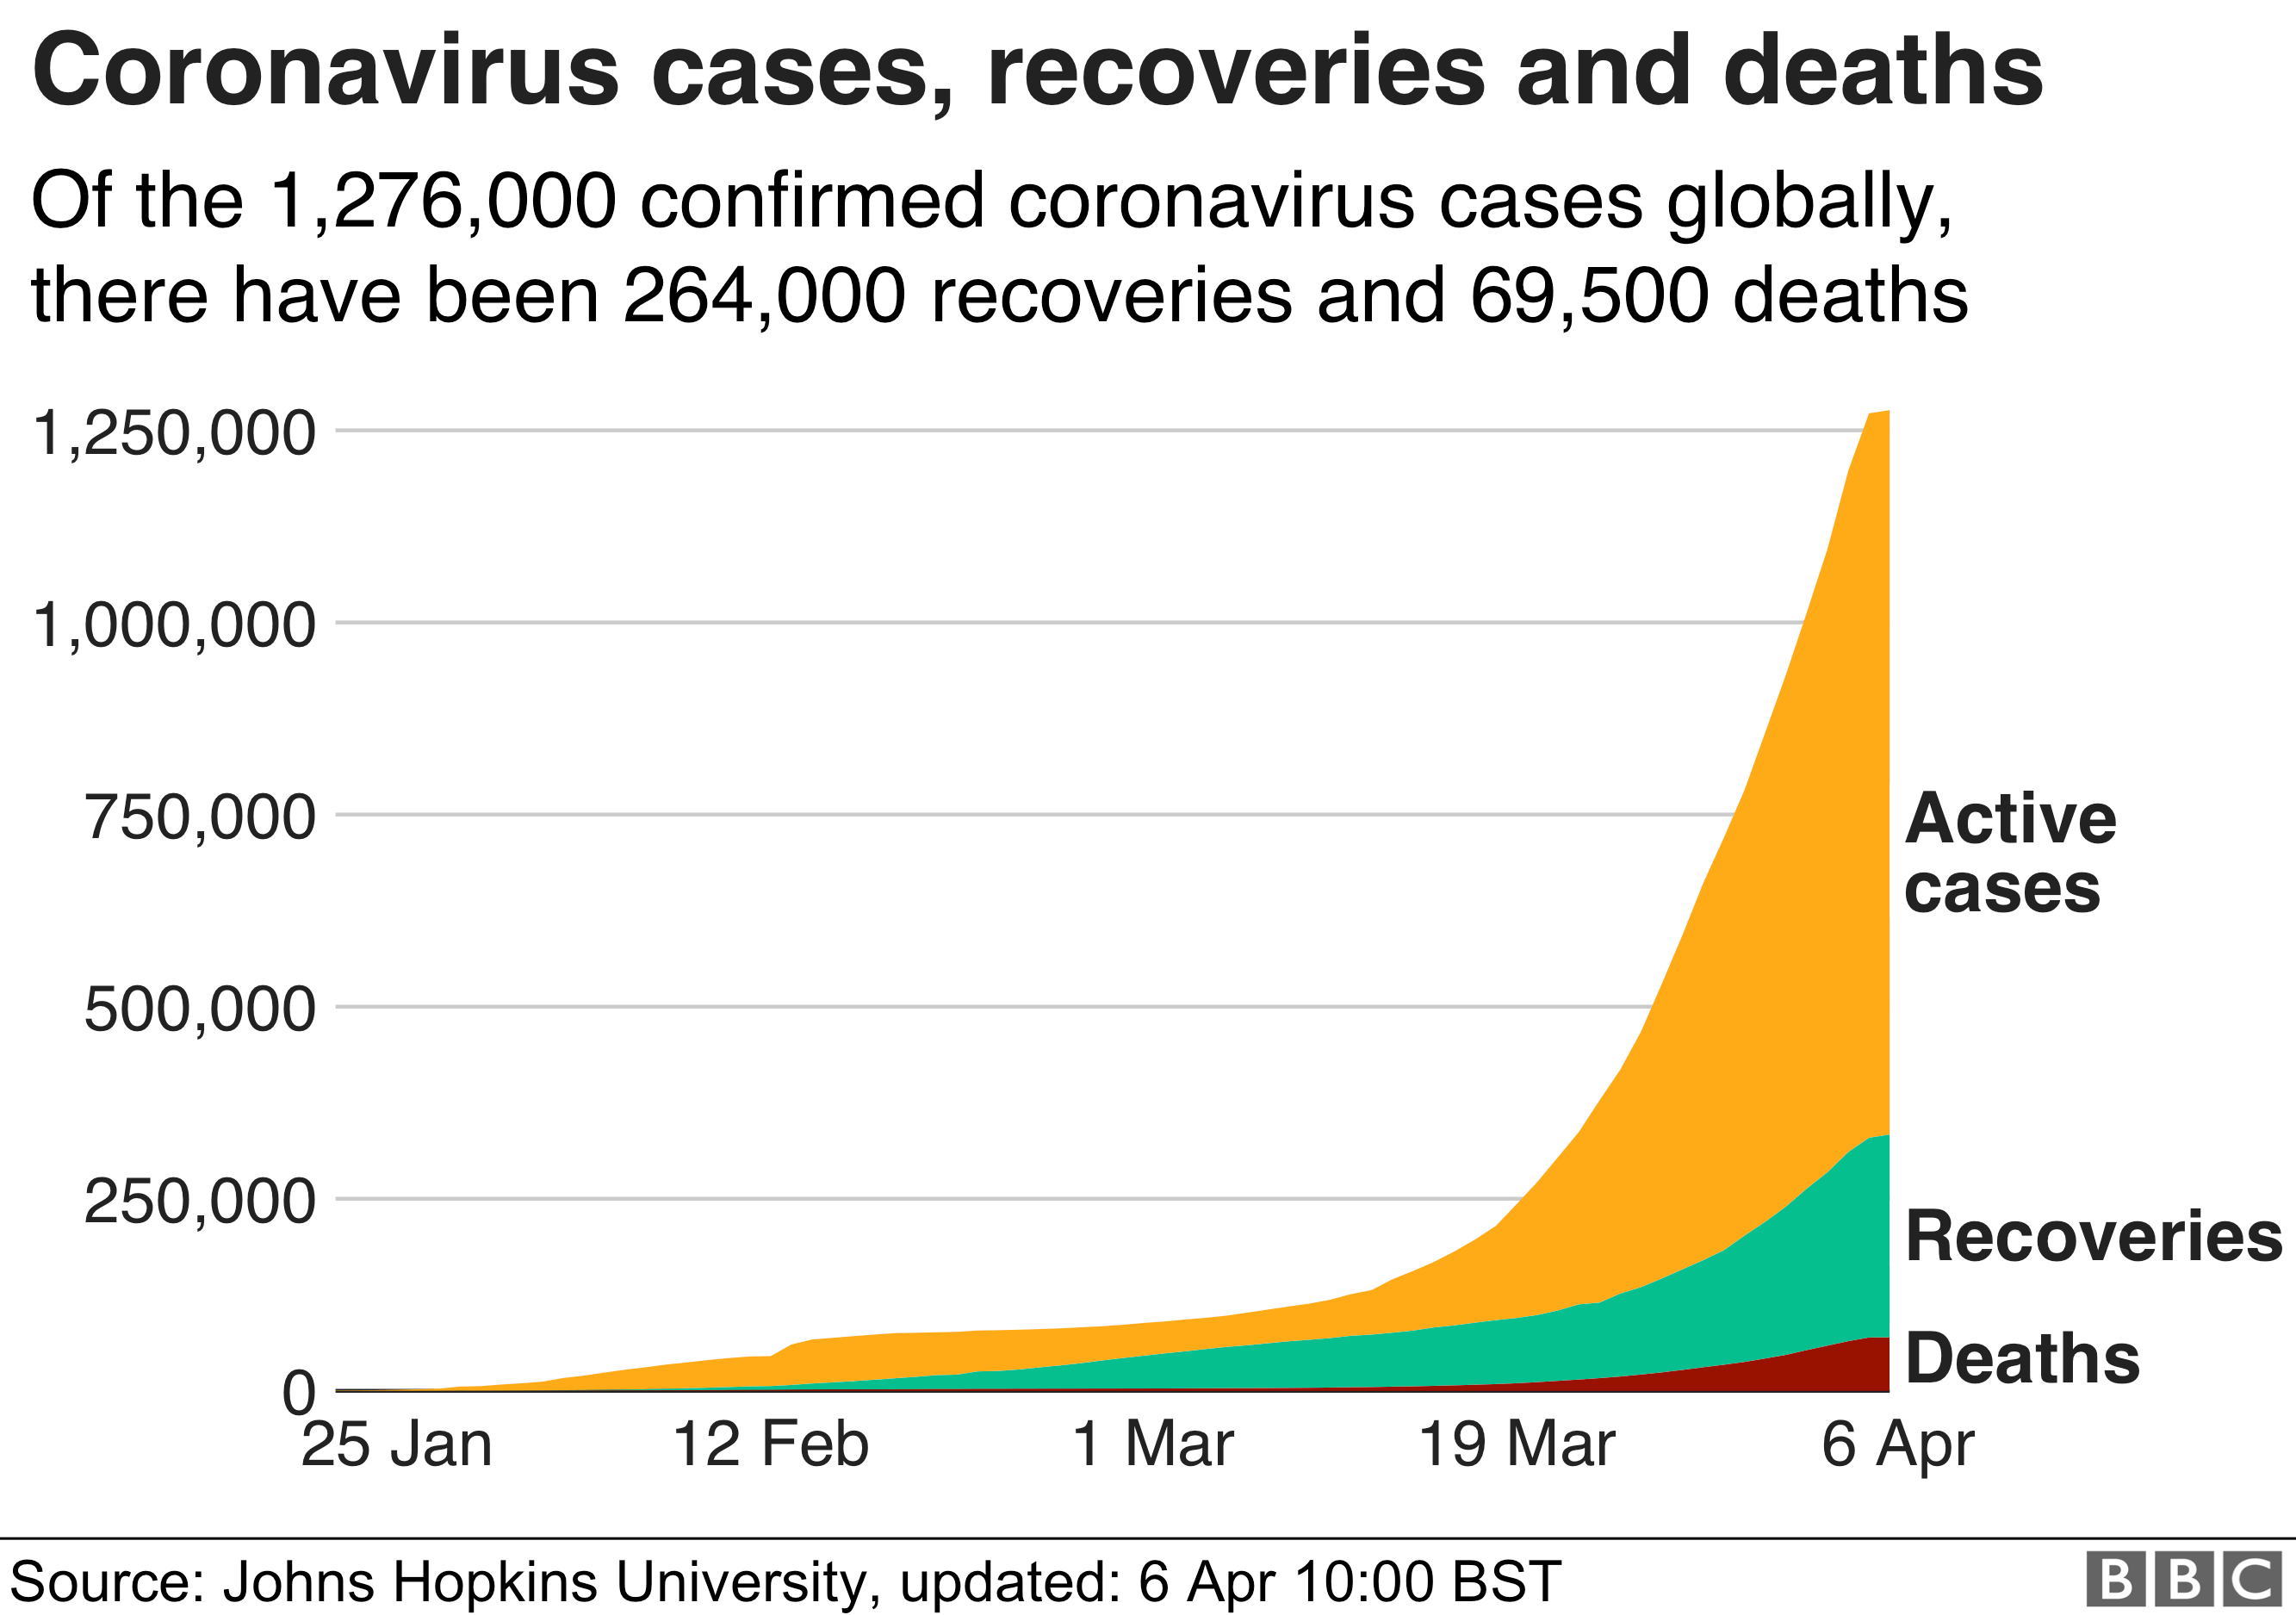 Area chart showing cases, recoveries and deaths